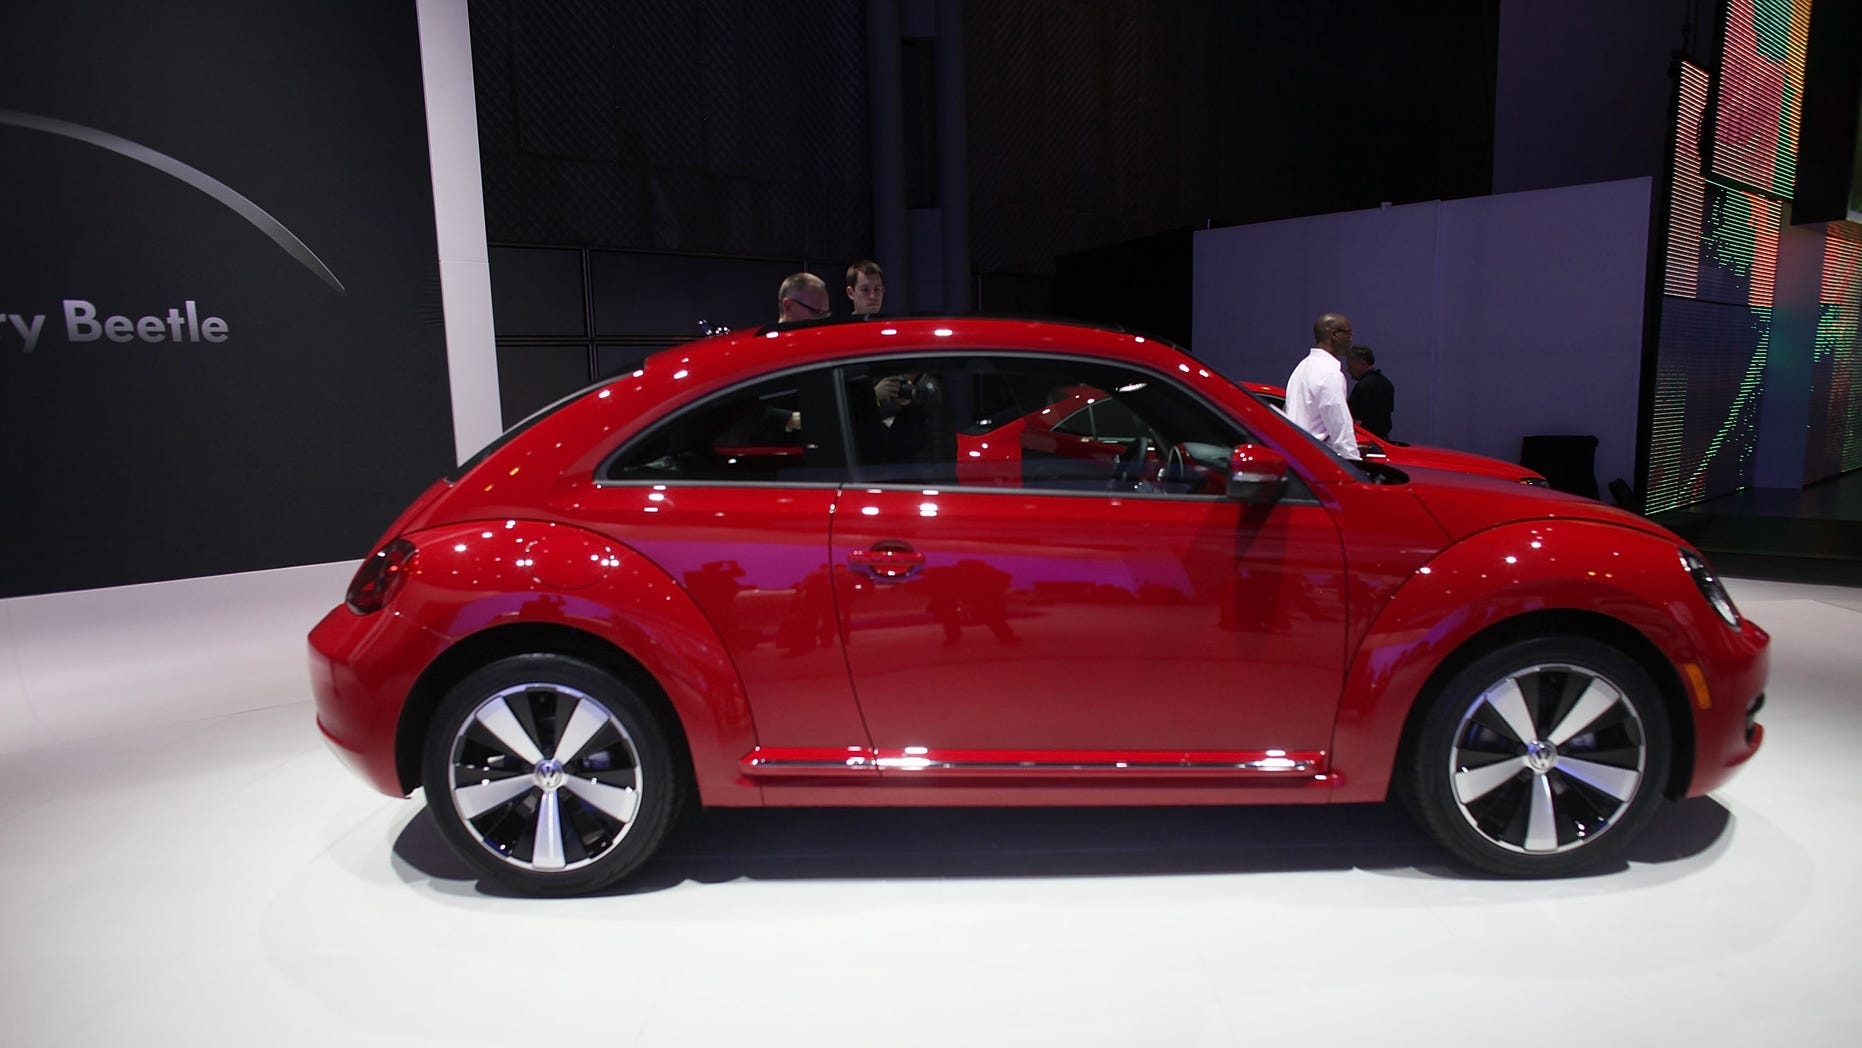 Apr 20: The new 2012 Volkswagen Beetle is viewed on the floor of the New York International Auto Show April 20, 2011 in New York City.